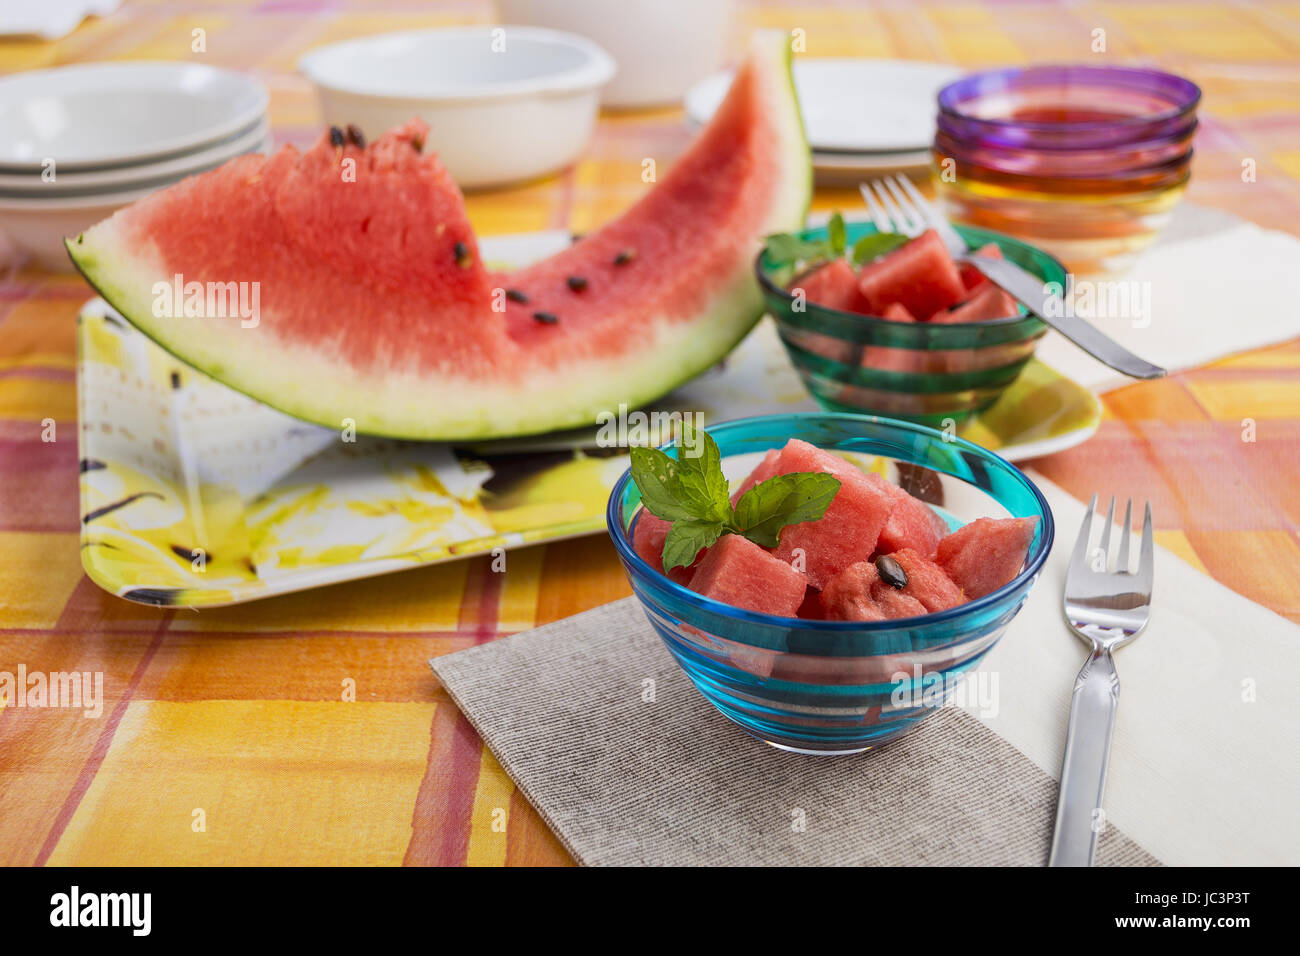 Watermelon slice and pieces - Stock Image